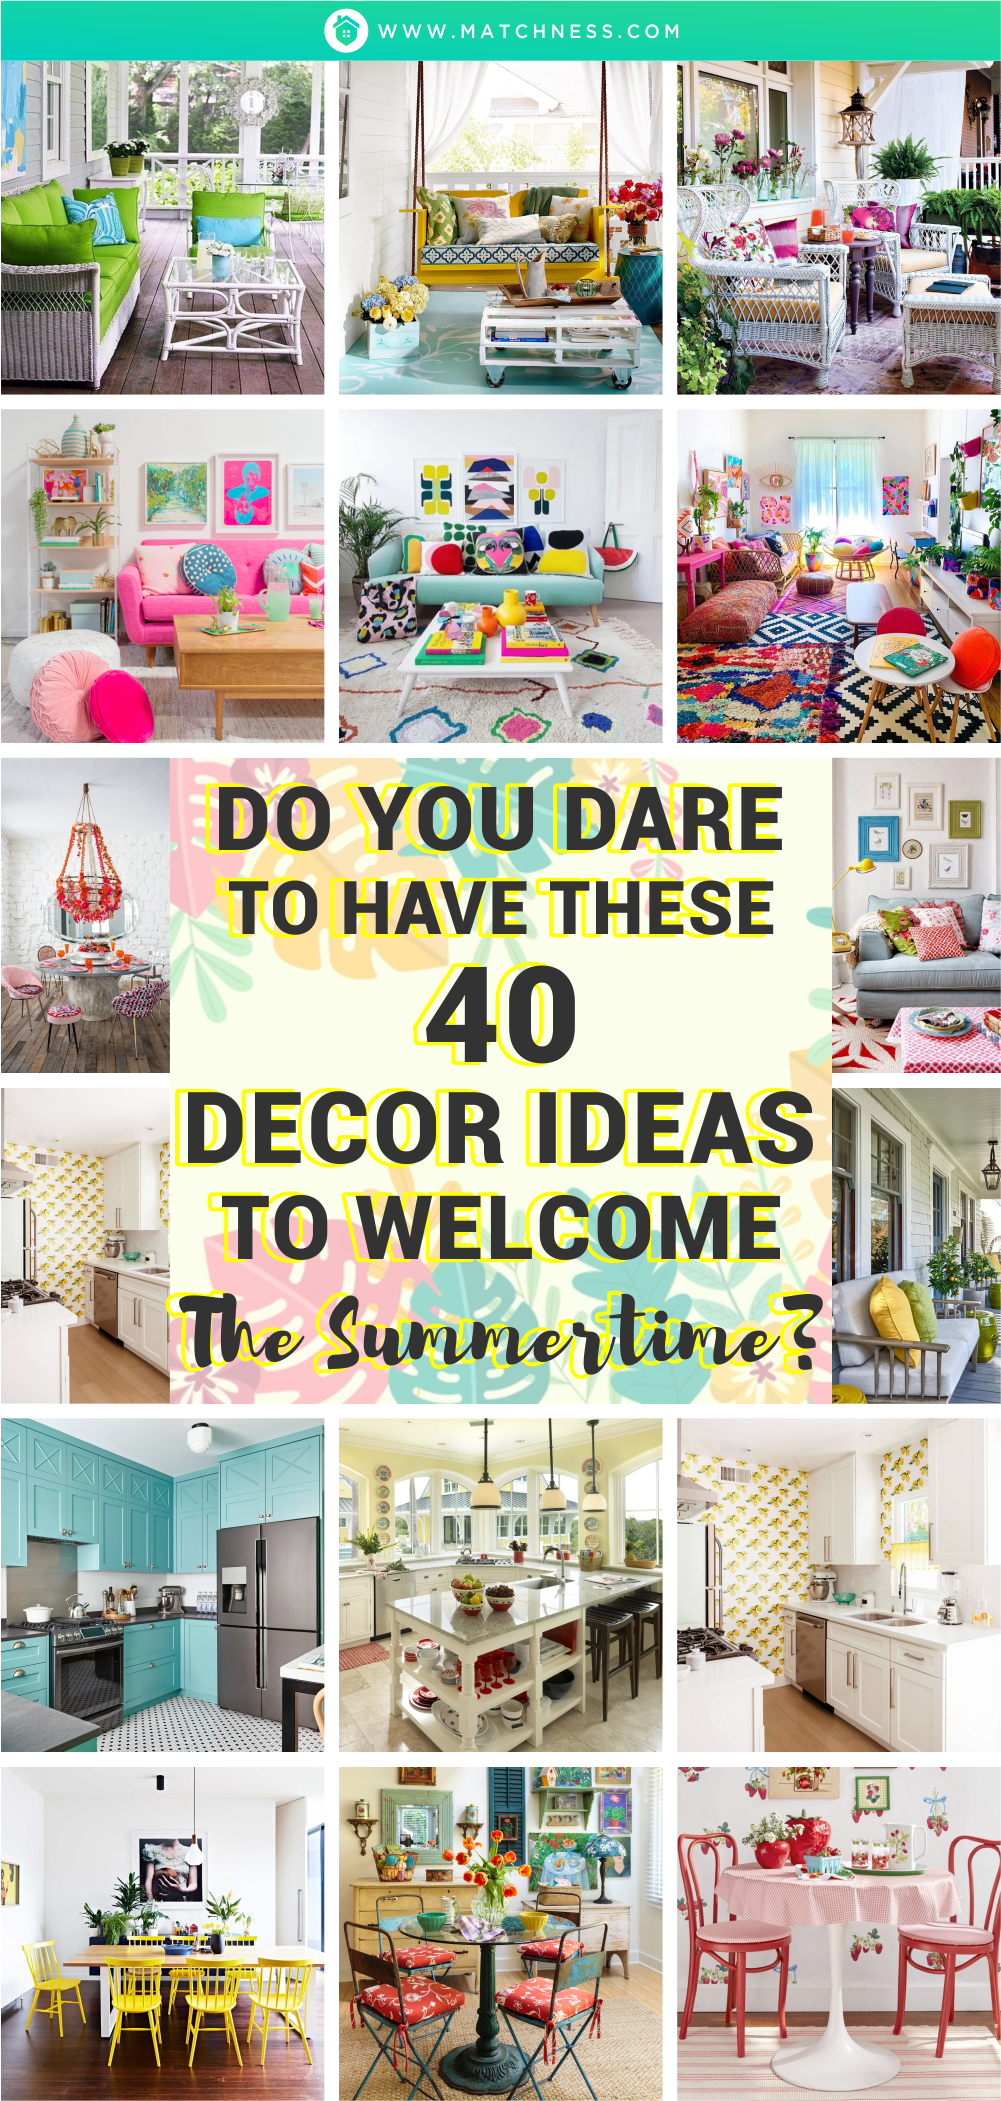 Do-you-dare-to-have-these-40-decor-ideas-to-welcome-the-summertime1